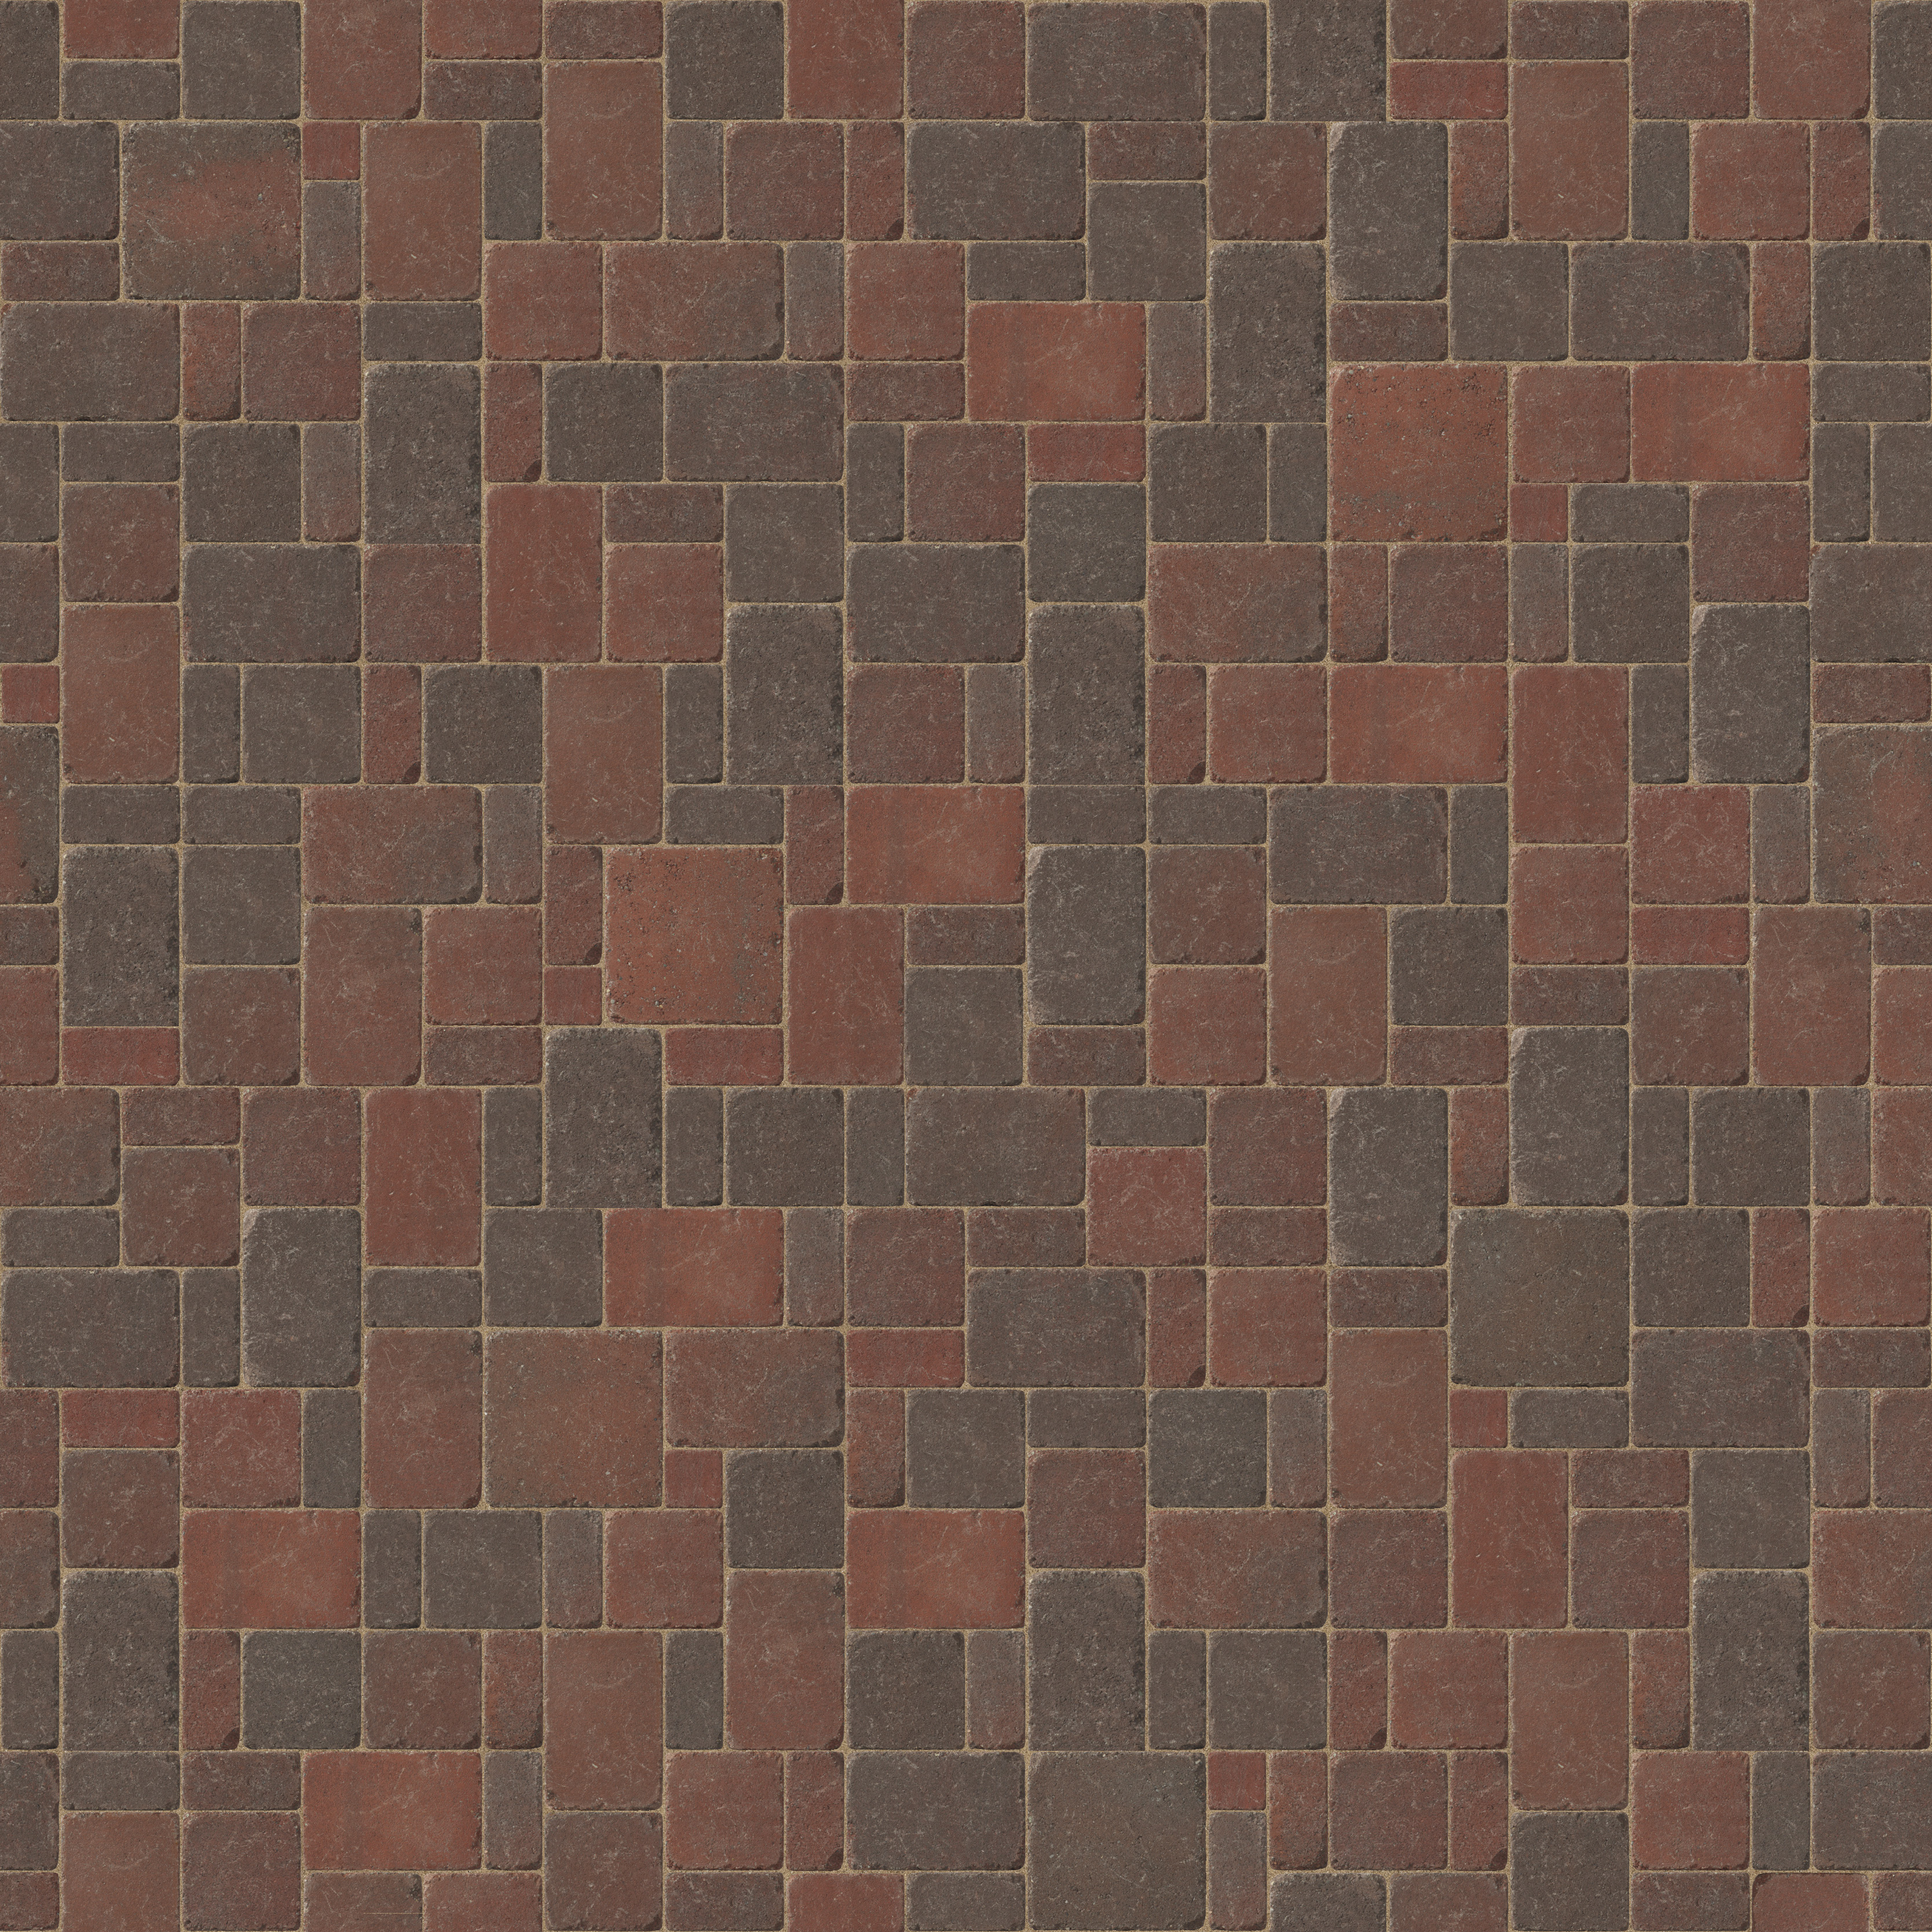 Belgard Dublin Cobble Pavers Amp Interlocking Concrete Pavers